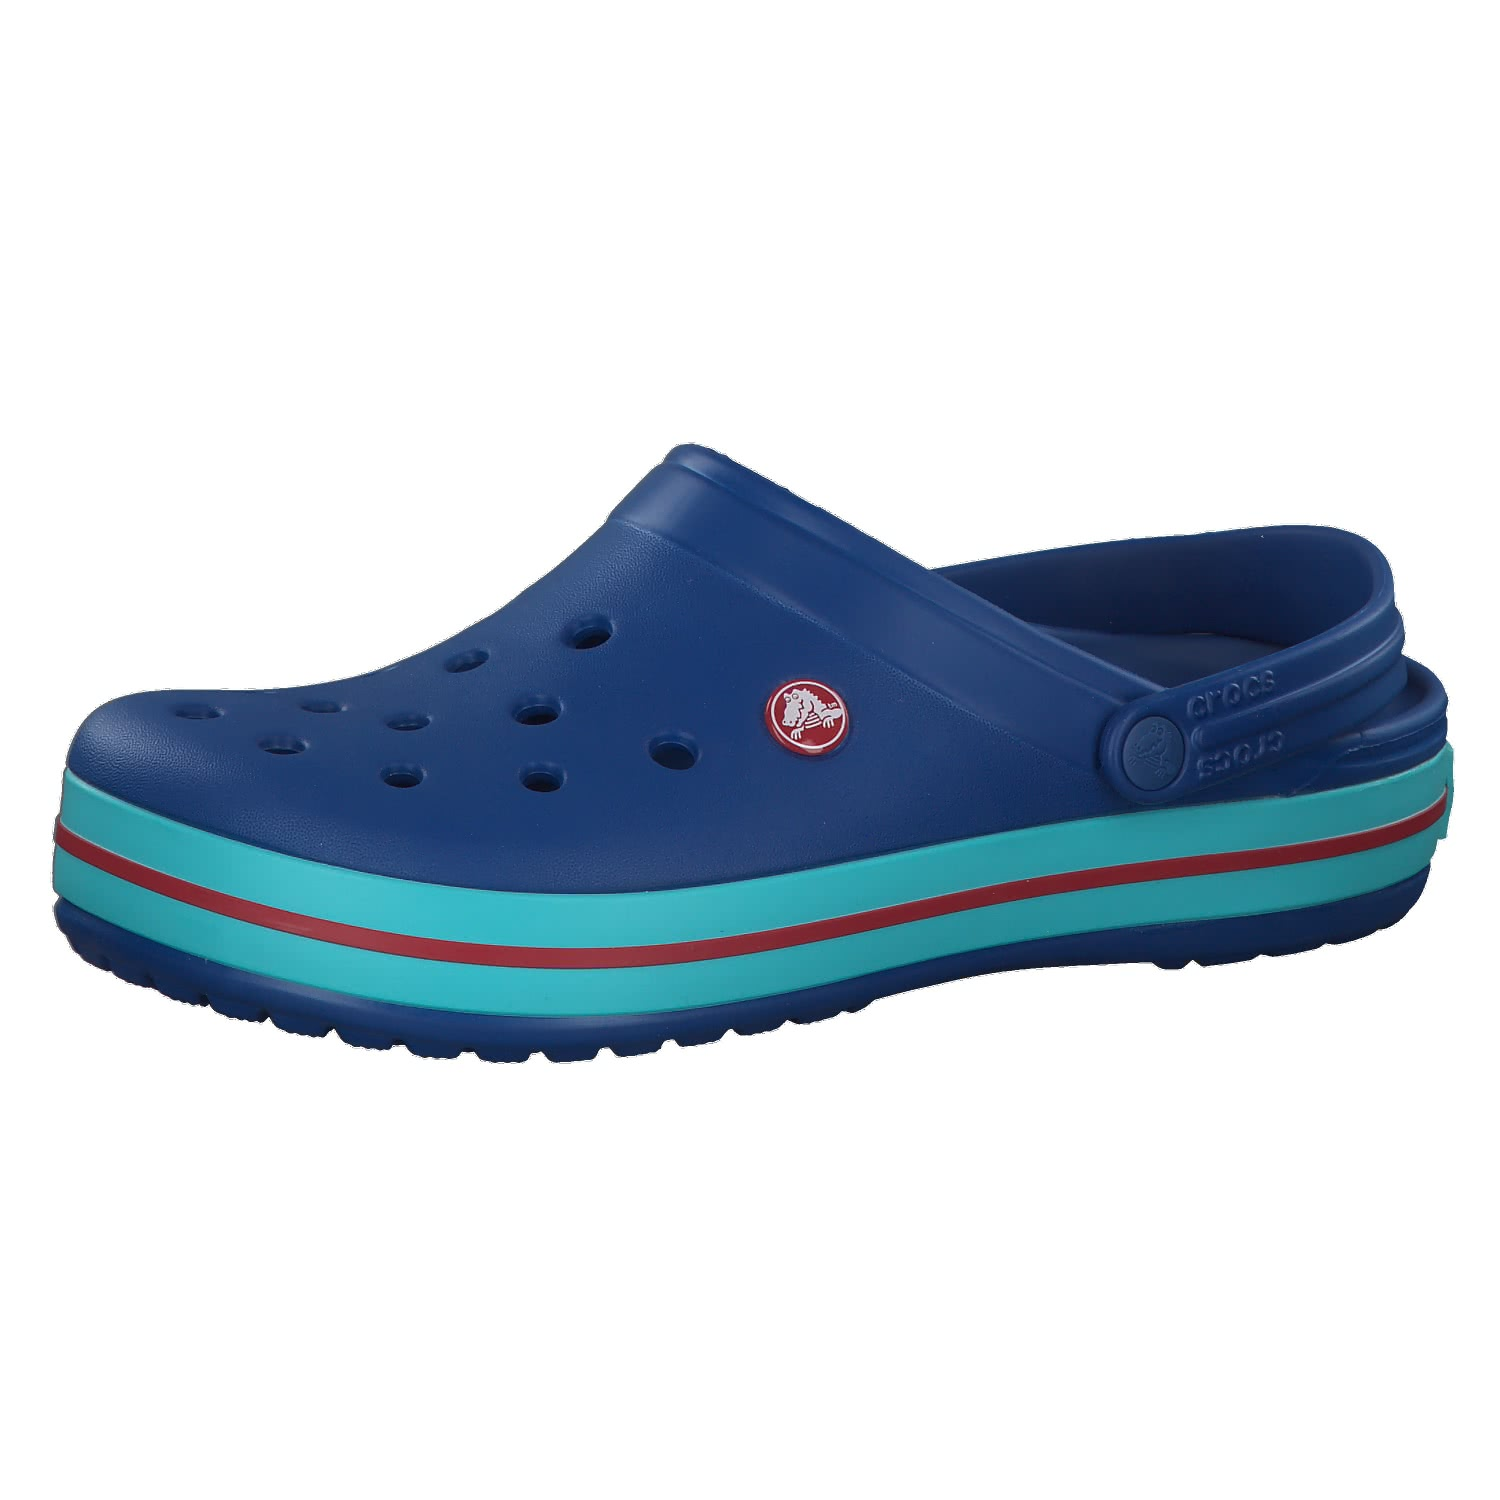 official photos 5c393 e1ec9 Crocs Schuhe Crocband 11016  cortexpower.de